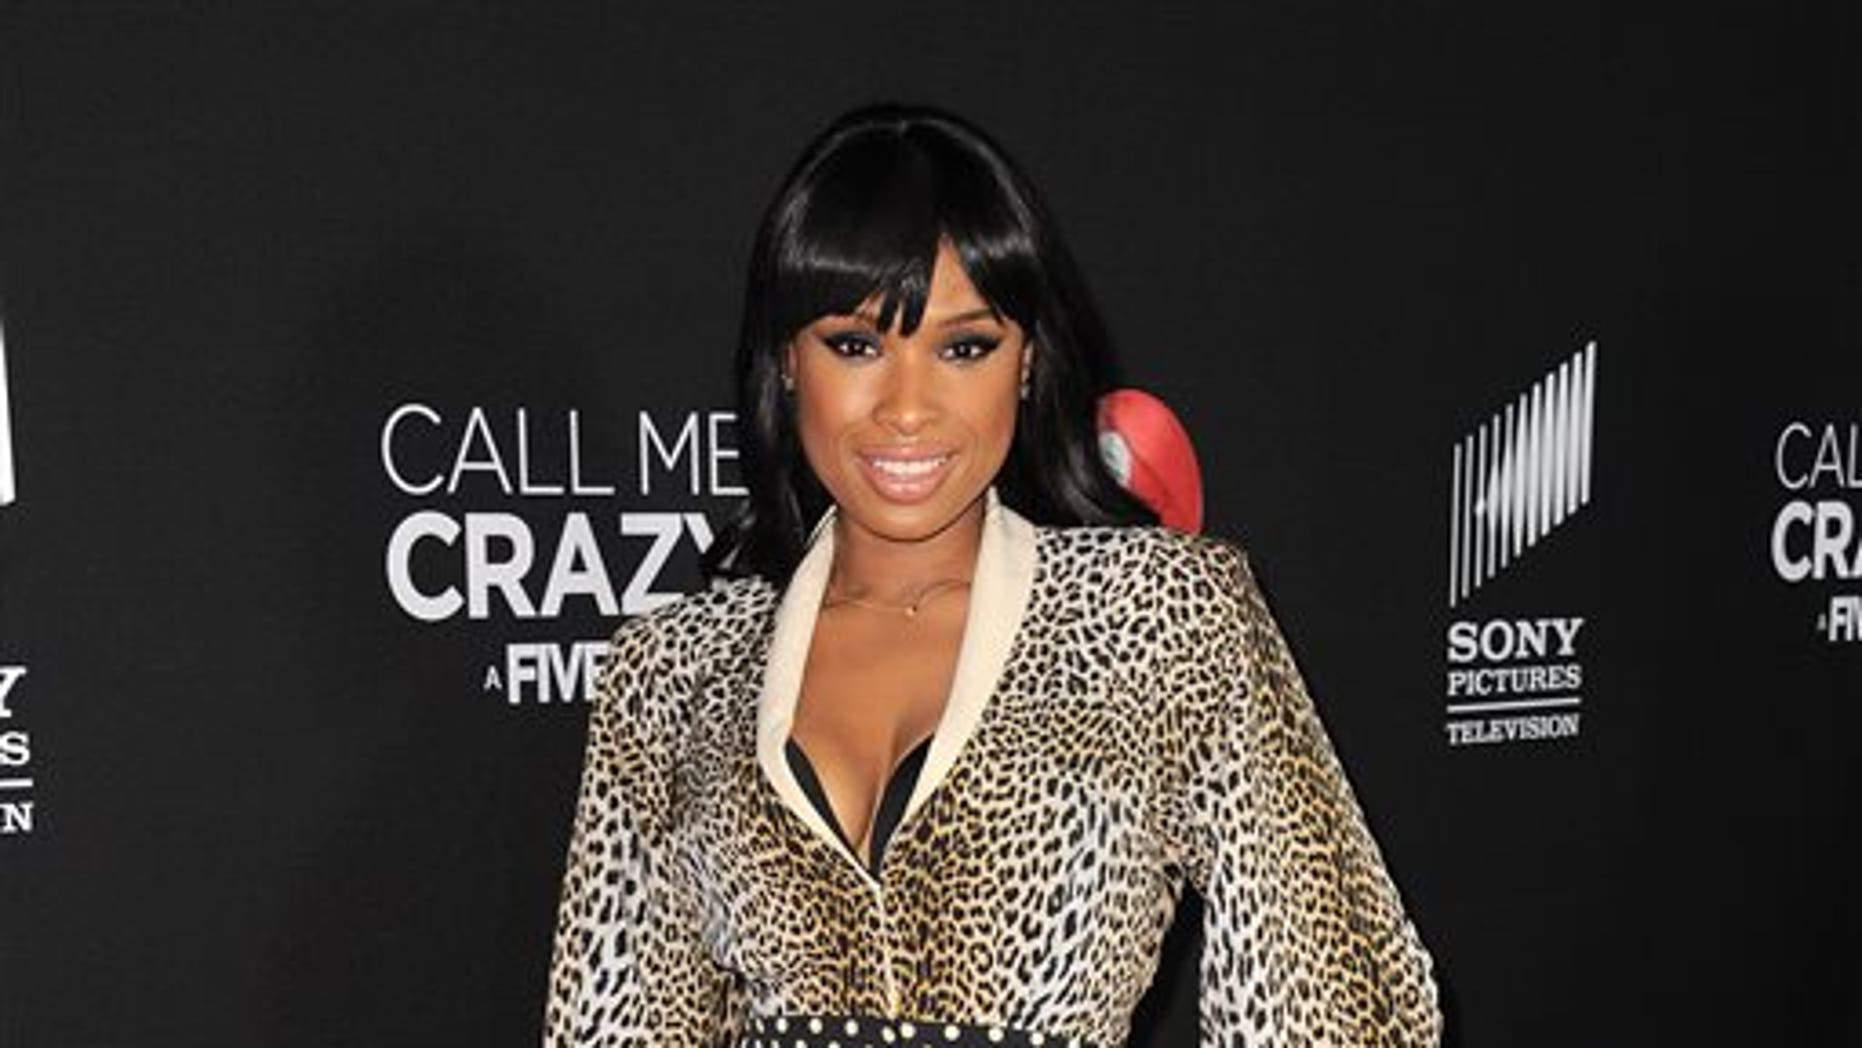 """In this April 16, 2013 file photo, Jennifer Hudson arrives at the world premiere of """"Call Me Crazy: A Five Film"""" at the Pacific Design Center, in Los Angeles. Hudson and Christina Aguilera are among the artists set to pay tribute to this year's eclectic group of Rock and Roll Hall of Fame inductees. Aguilera and Hudson are scheduled to perform in honor of late disco queen Donna Summer at the 28th annual induction ceremony on Thursday, April 18, 2013, at the Nokia Theatre in Los Angeles."""